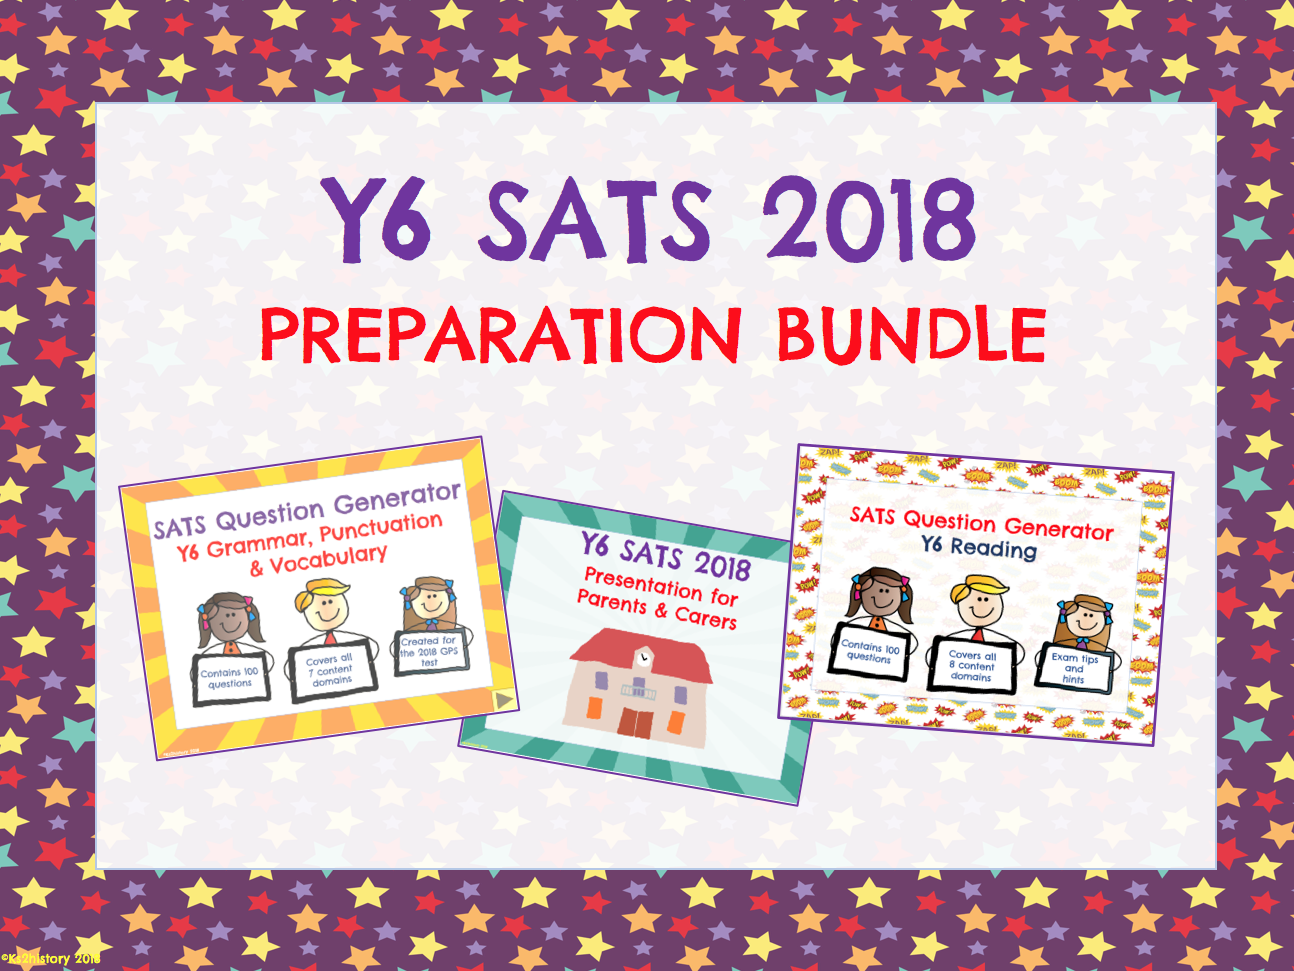 Y6 SATS Preparation Bundle